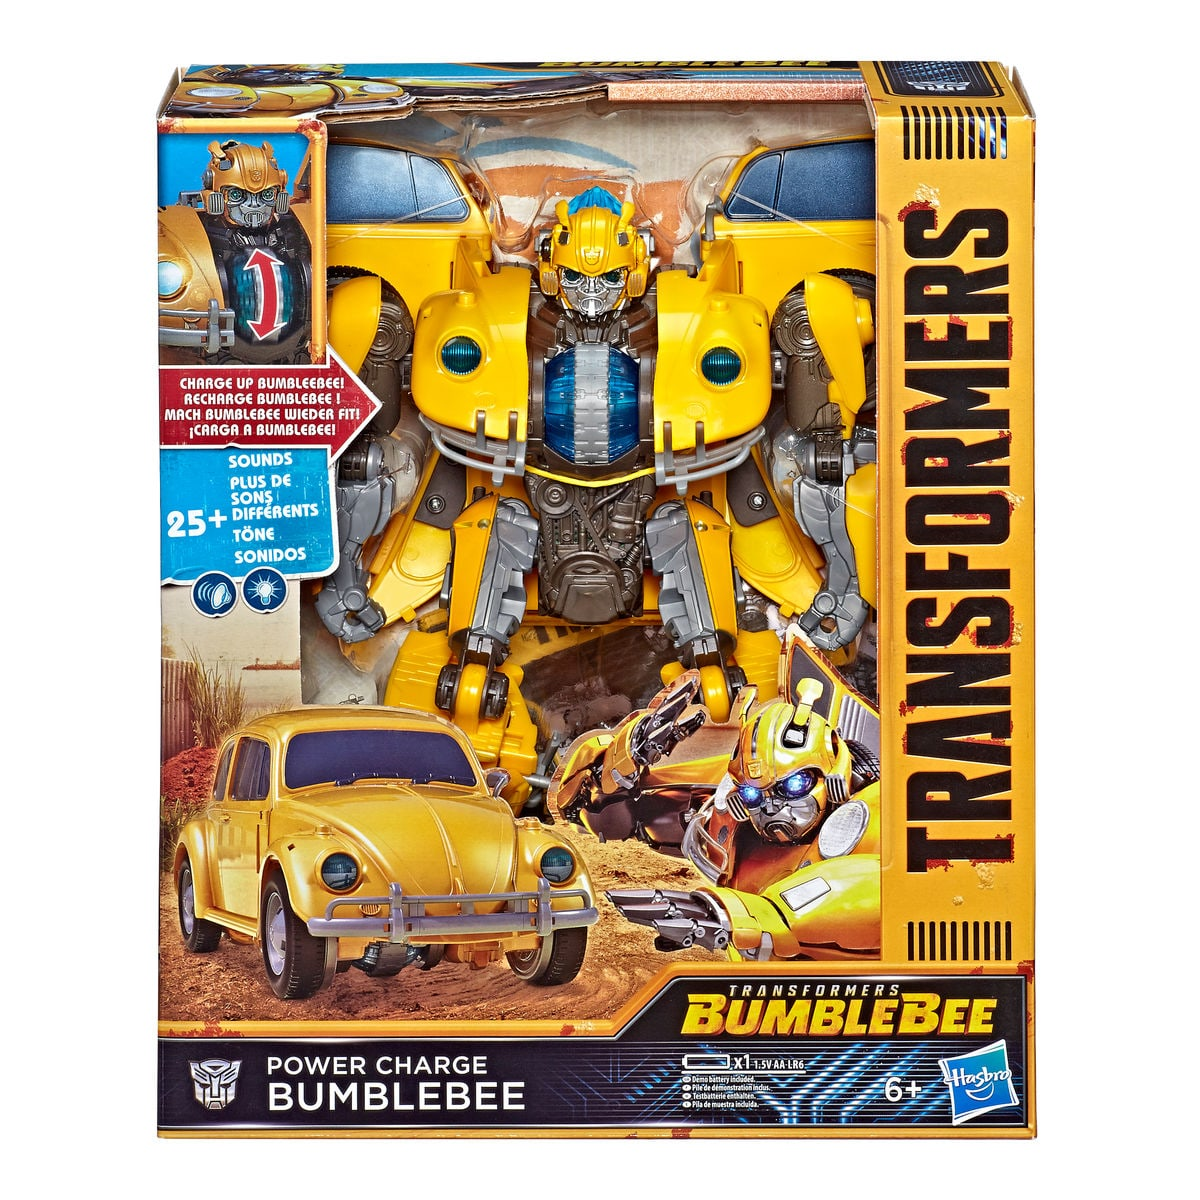 Transformers Movie Power Charge Bumblebee